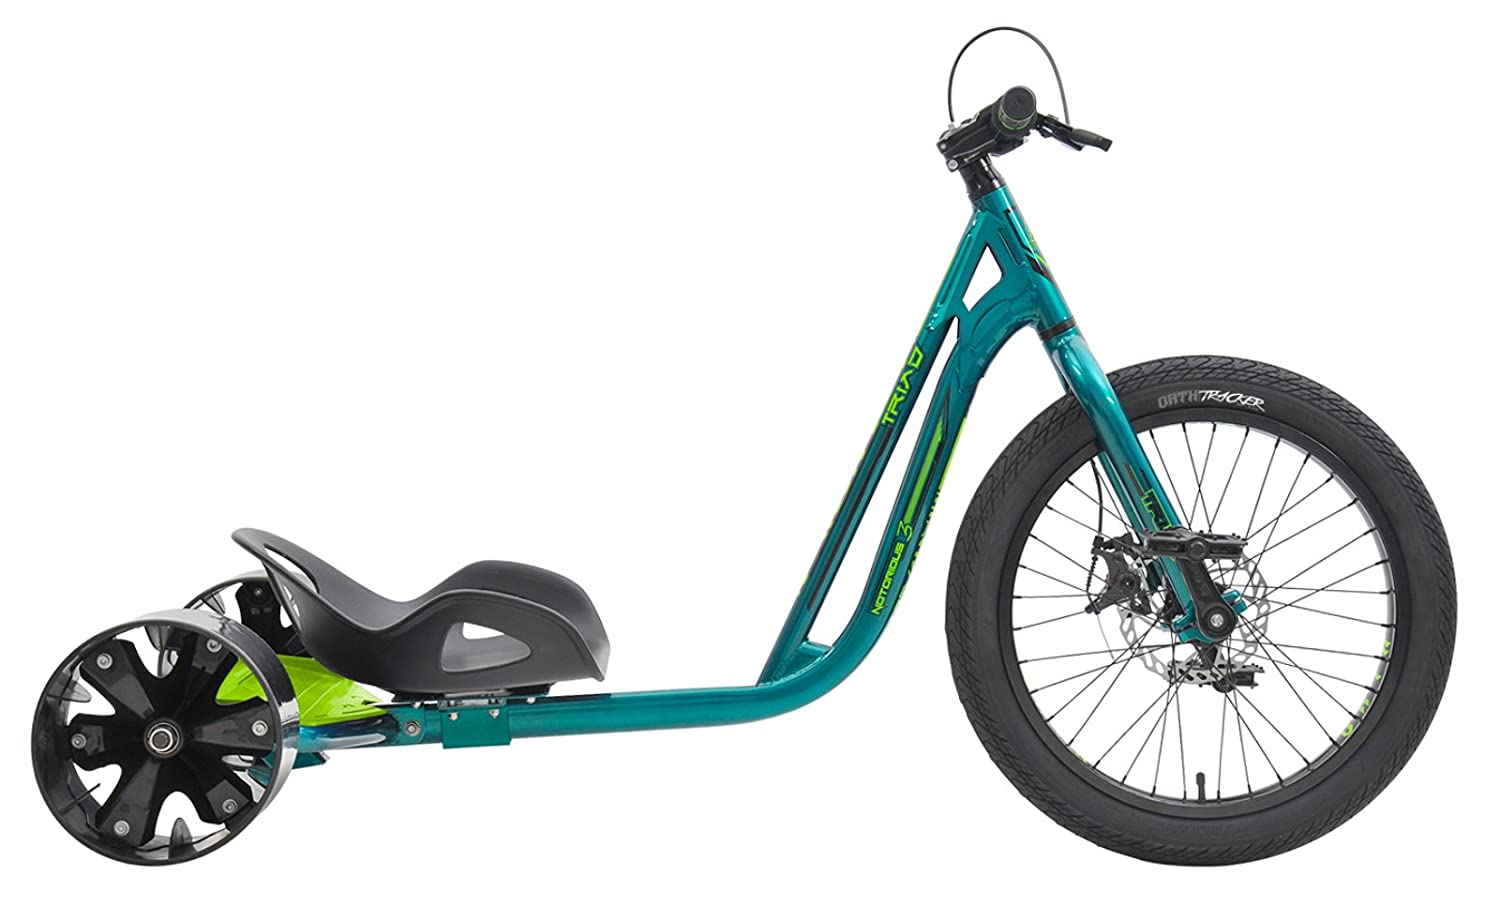 Triad Drift Trikes Notorious 3 Velo Enfant Mixte Adulte, Vert/Vert: Amazon.es: Deportes y aire libre